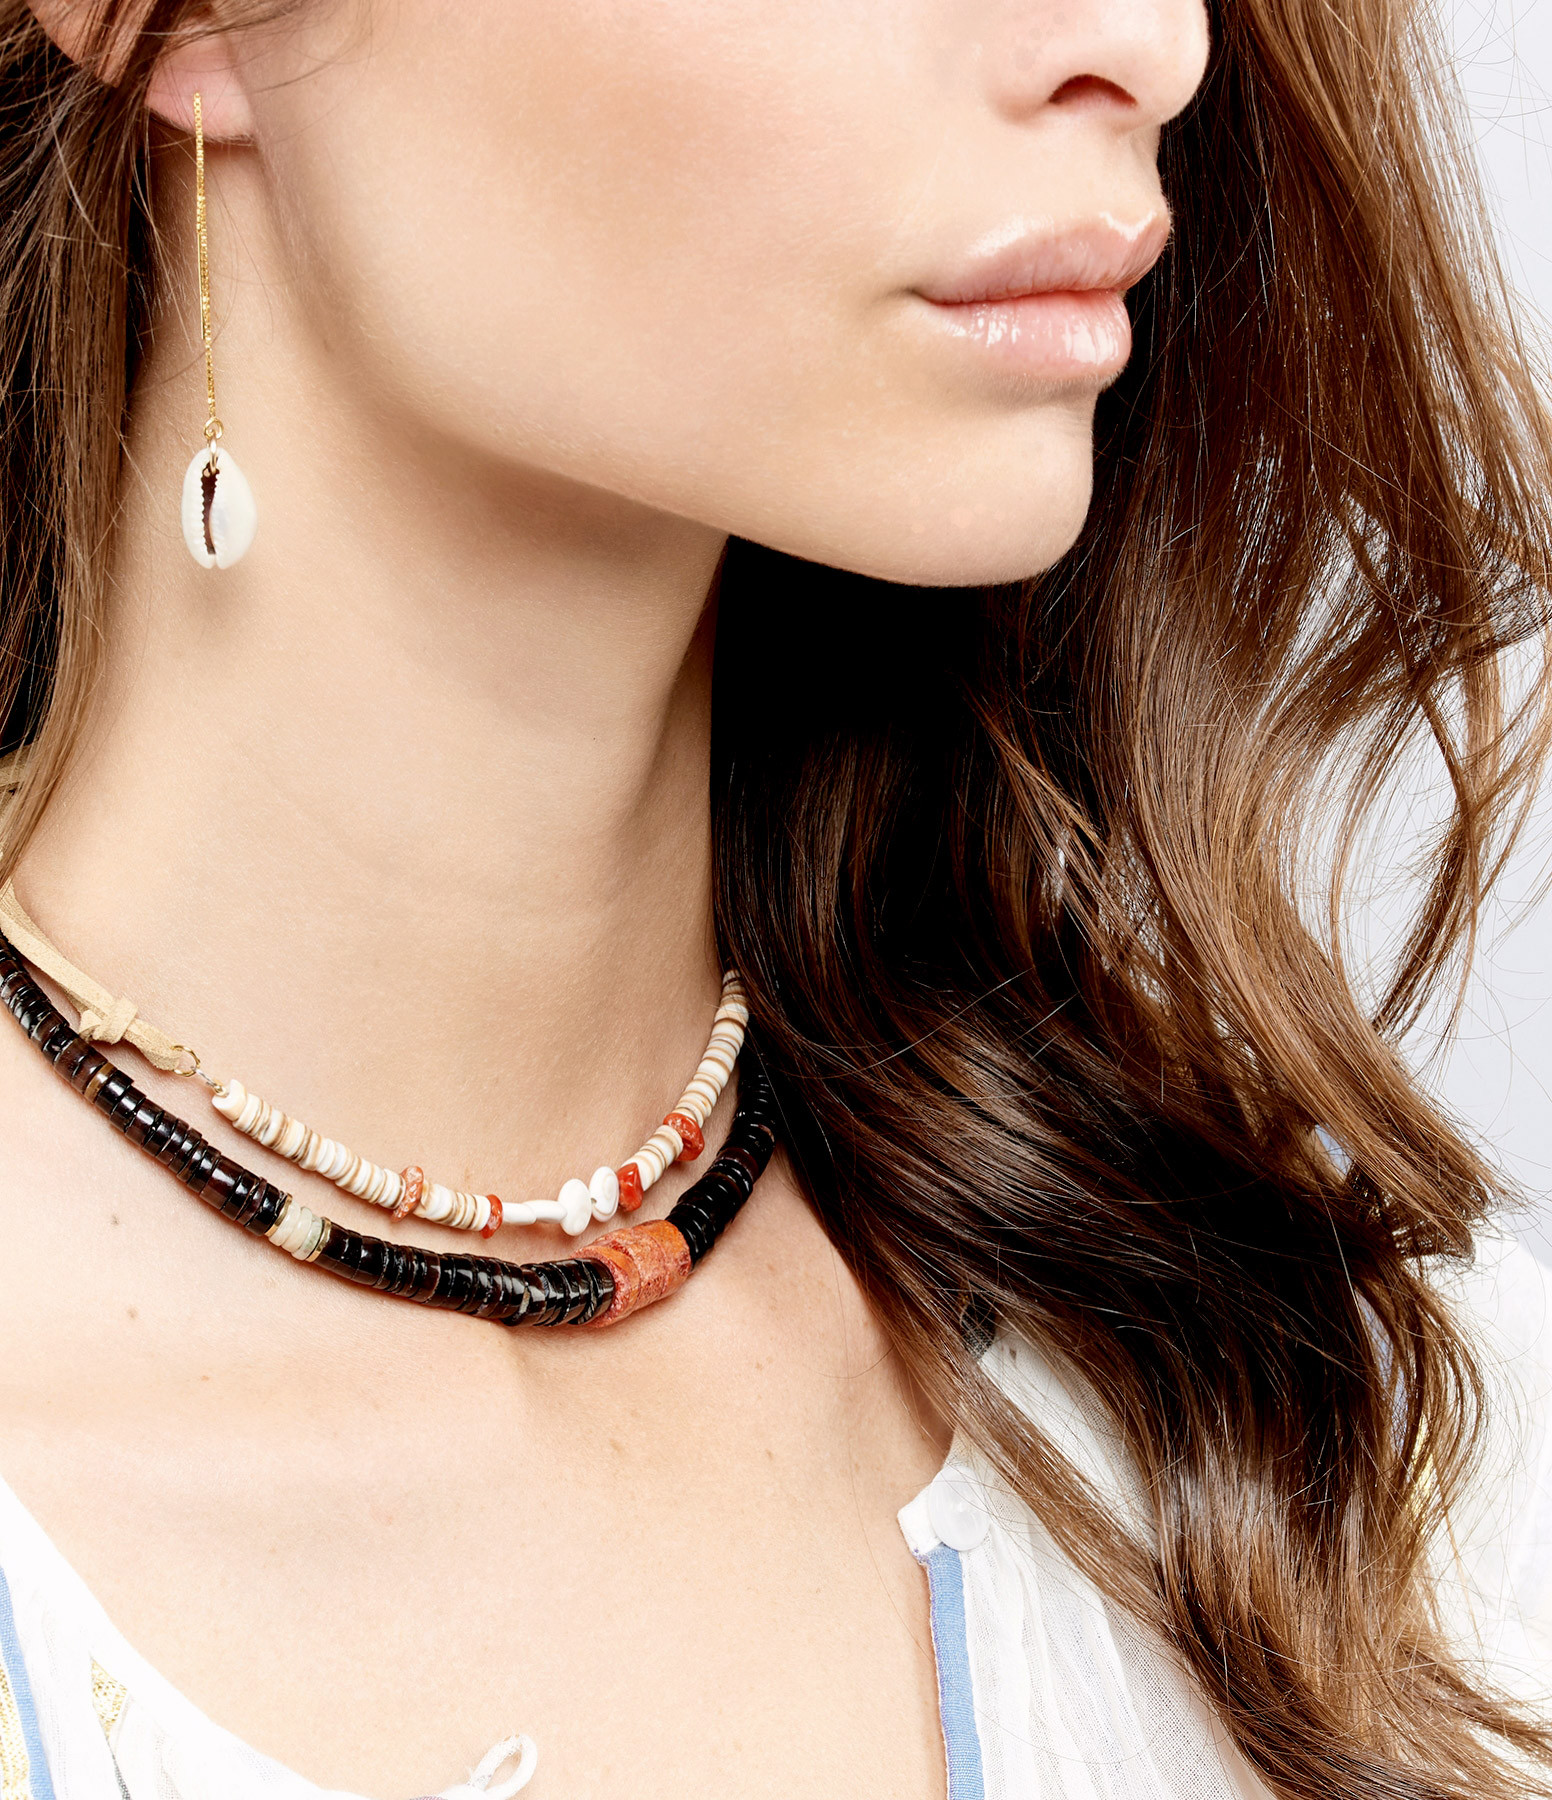 SISTERSTONE - Collier Coquillage Corail Fossilisé